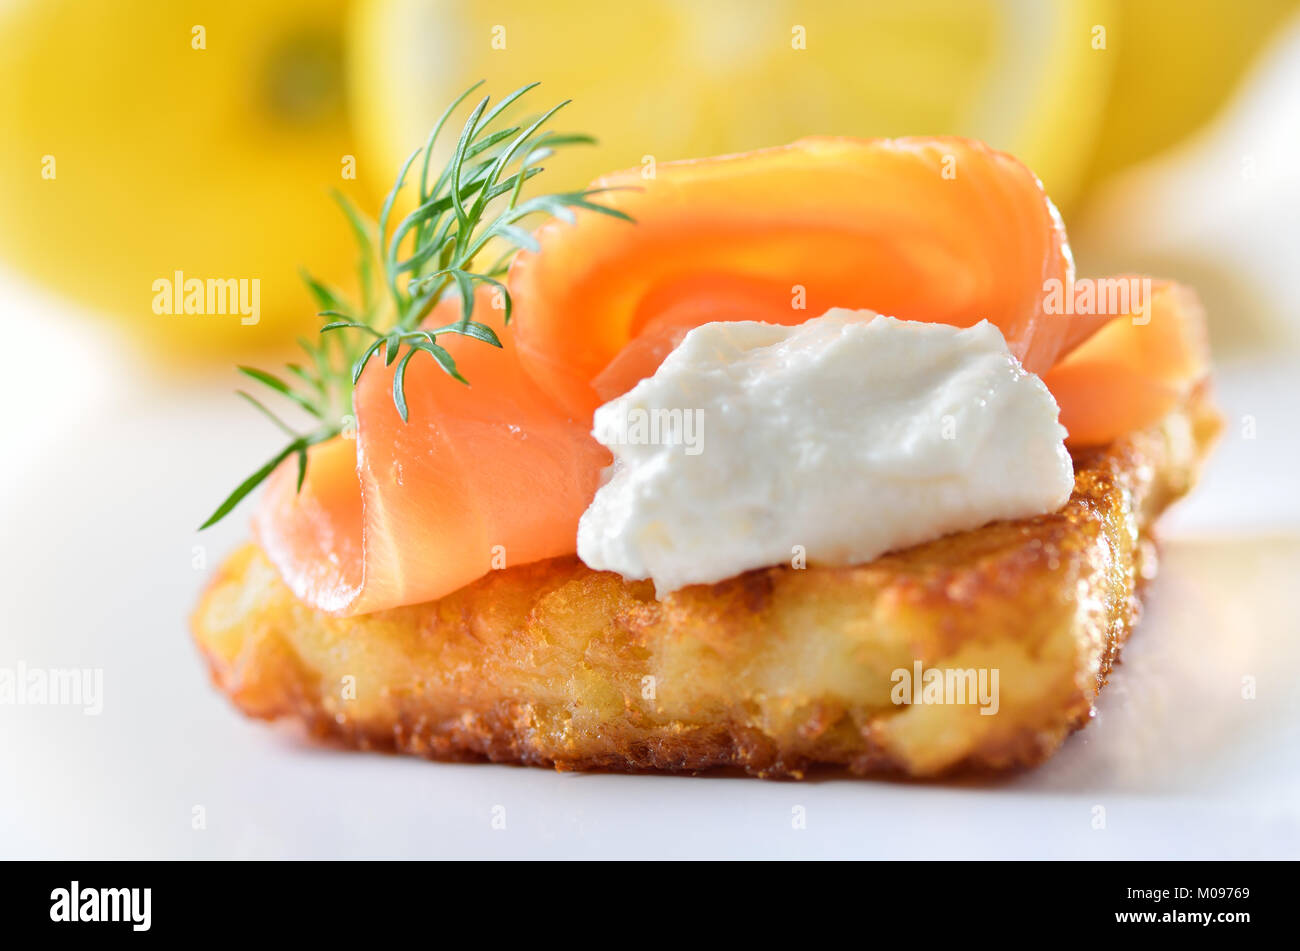 Grated fried potatoes with smoked salmon and creamed horseradish sauce - Stock Image